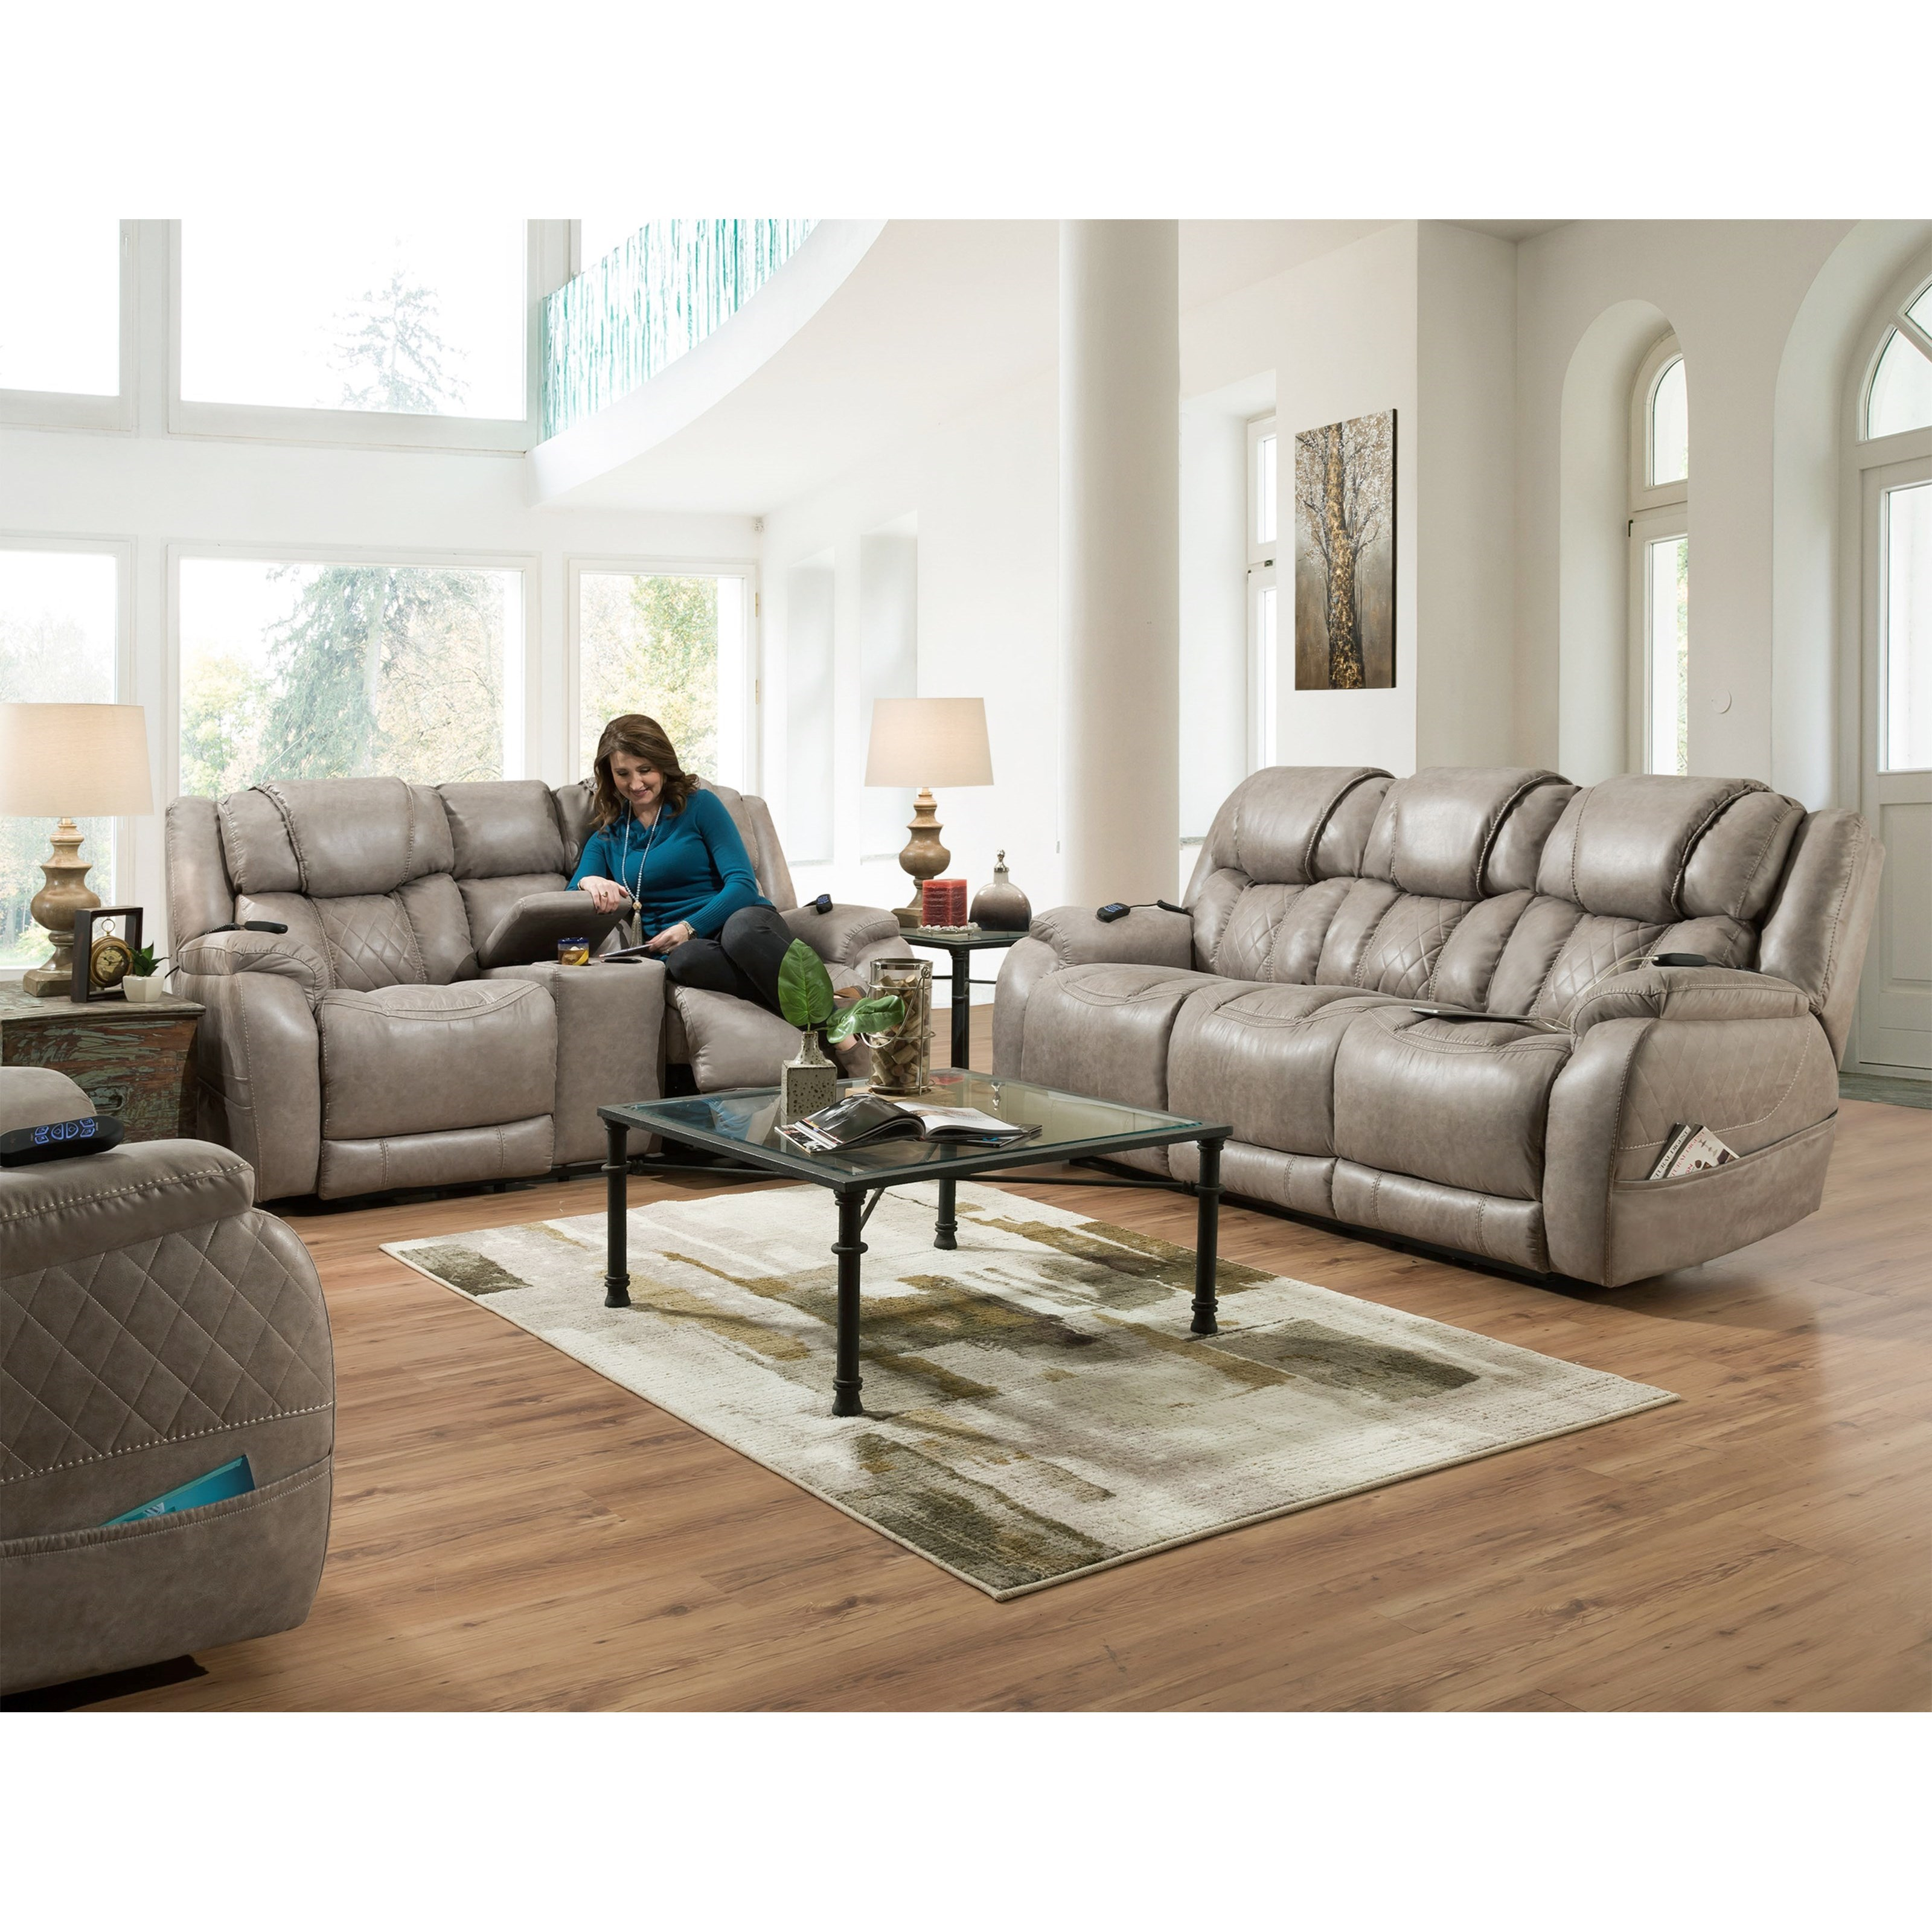 174 Reclining Living Room Group by HomeStretch at Turk Furniture